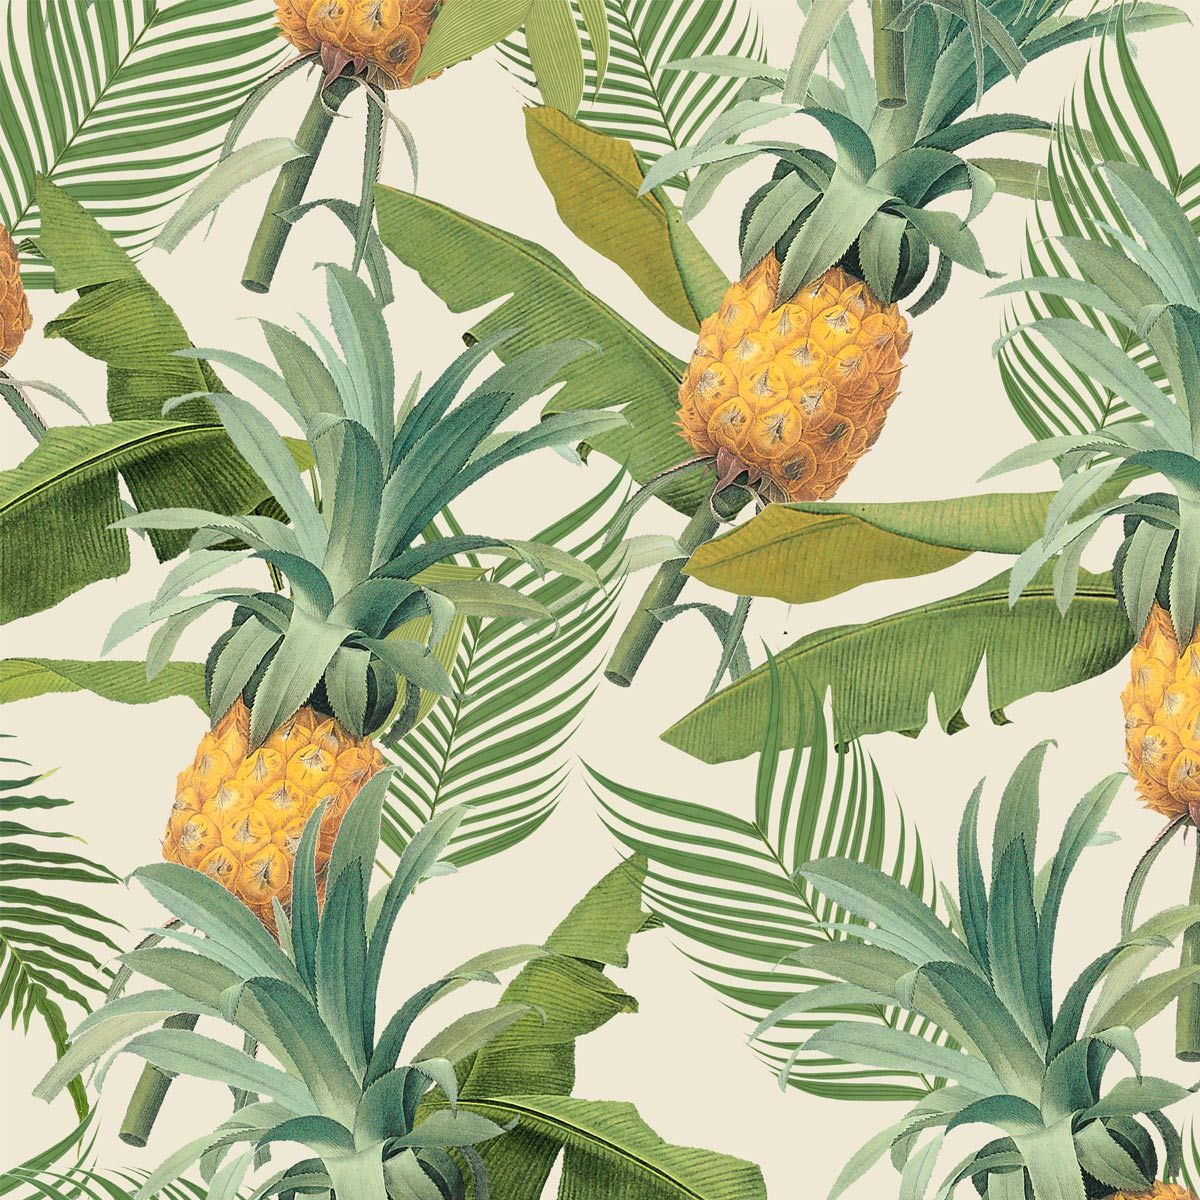 Tapete Gäste Wc Pineapple Textures Patterns Wallpapers Rugs